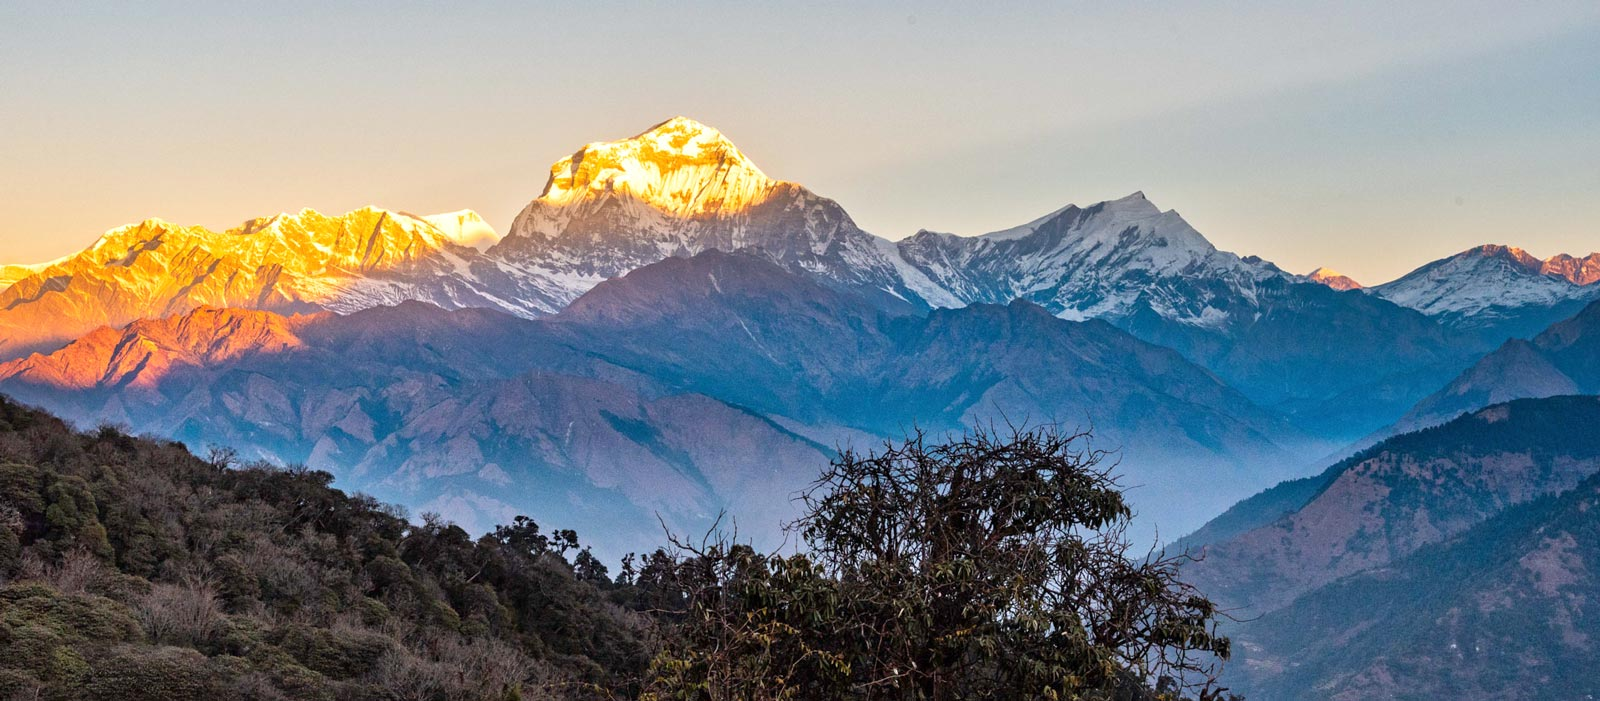 Short and Easy Trek in Nepal